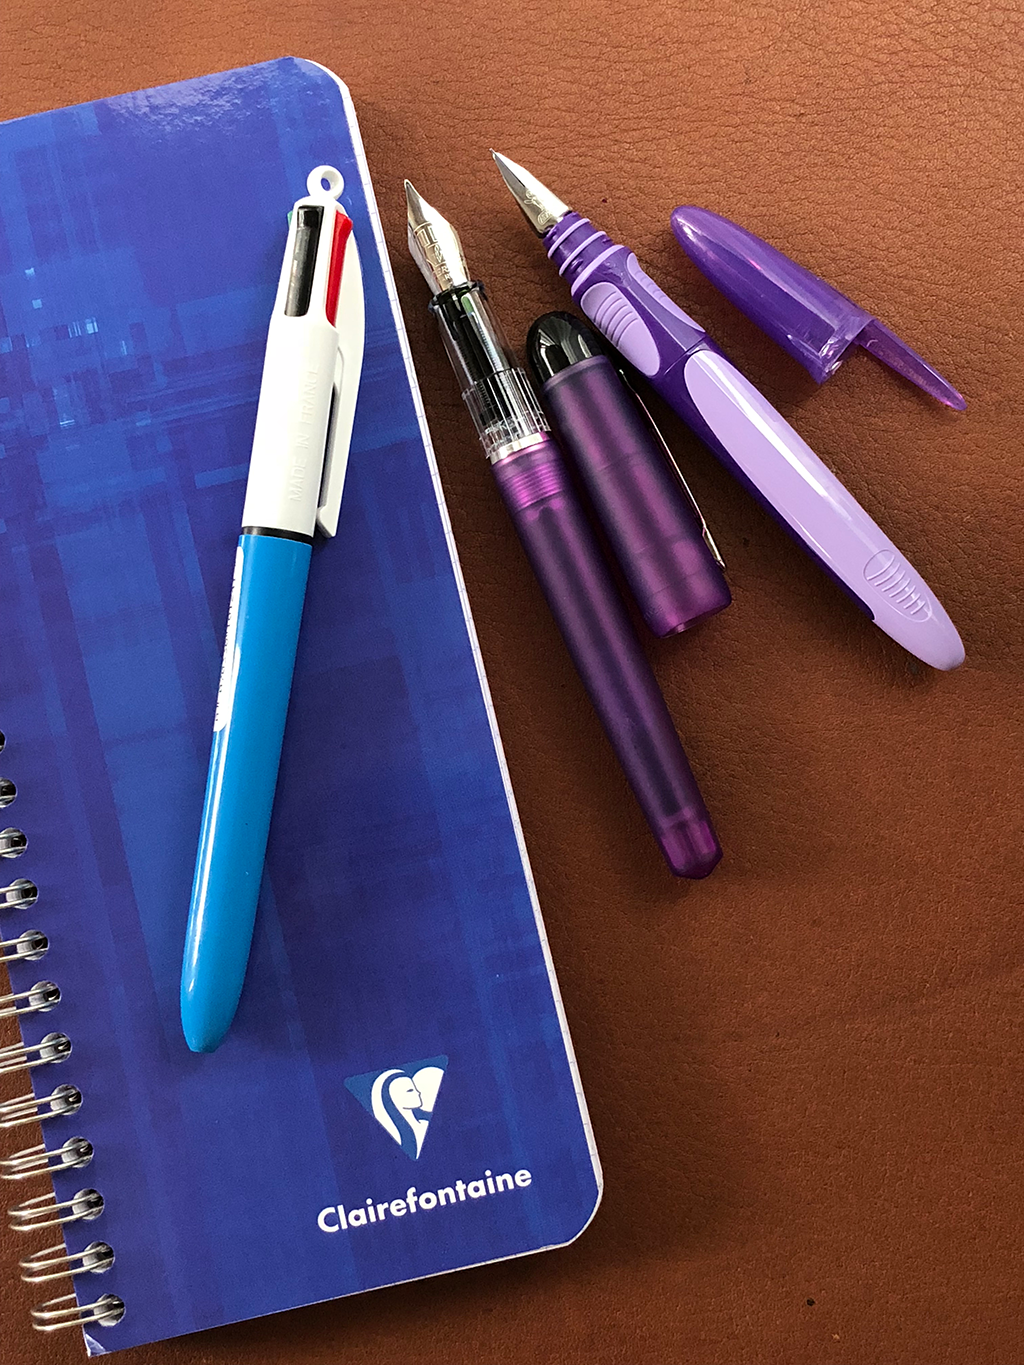 Clairefontaine notebook and two school pens